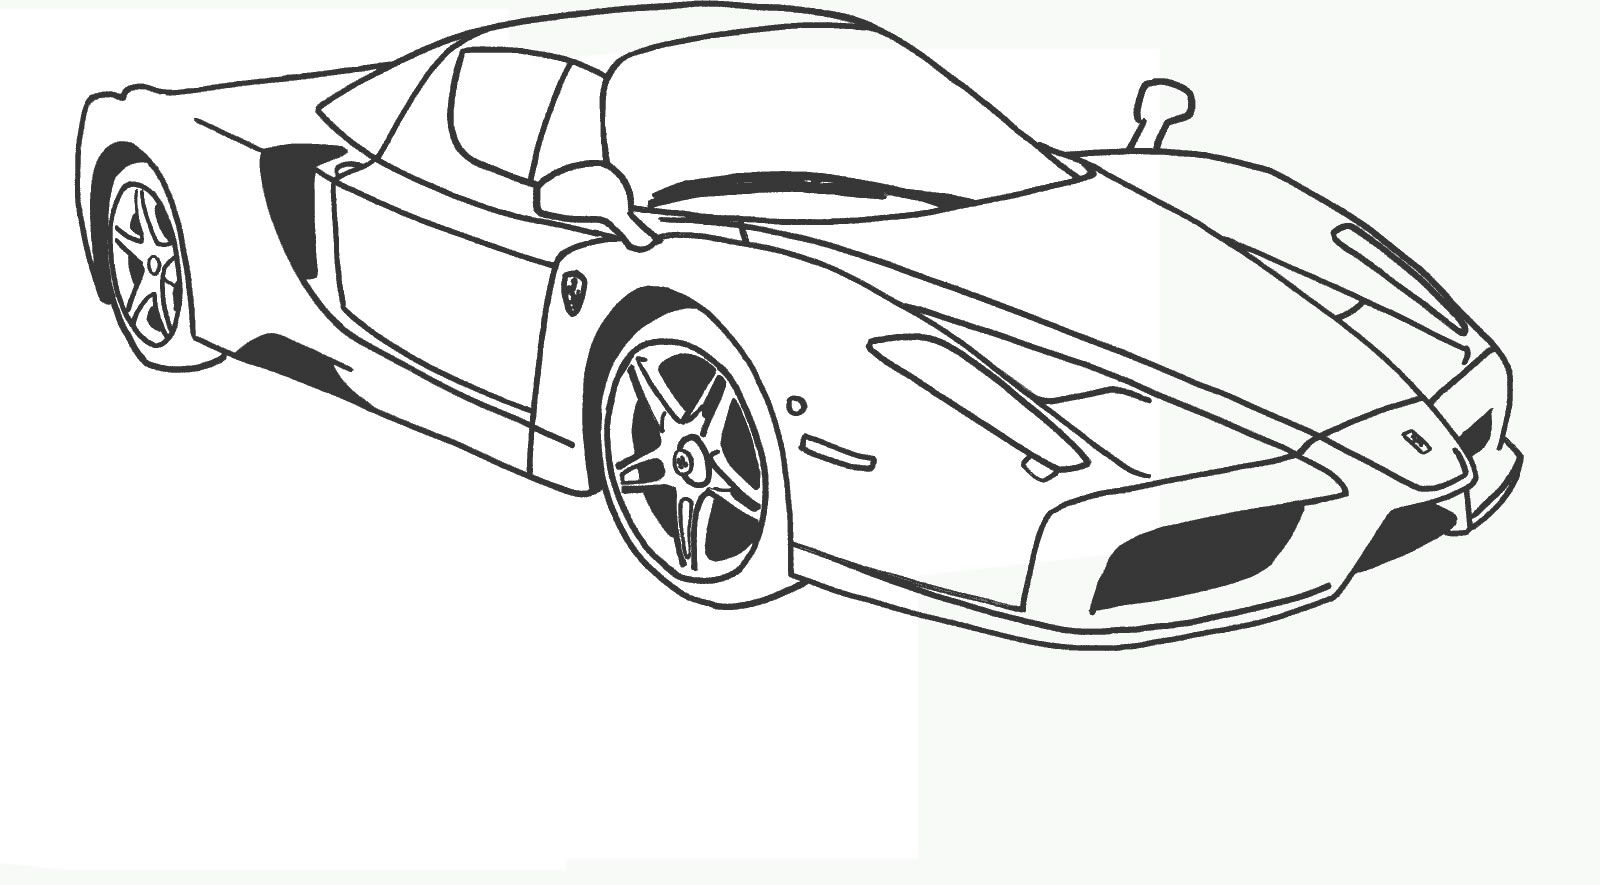 Ferrari 7 Ferrari Coloring Pages Disegni Da Colorare